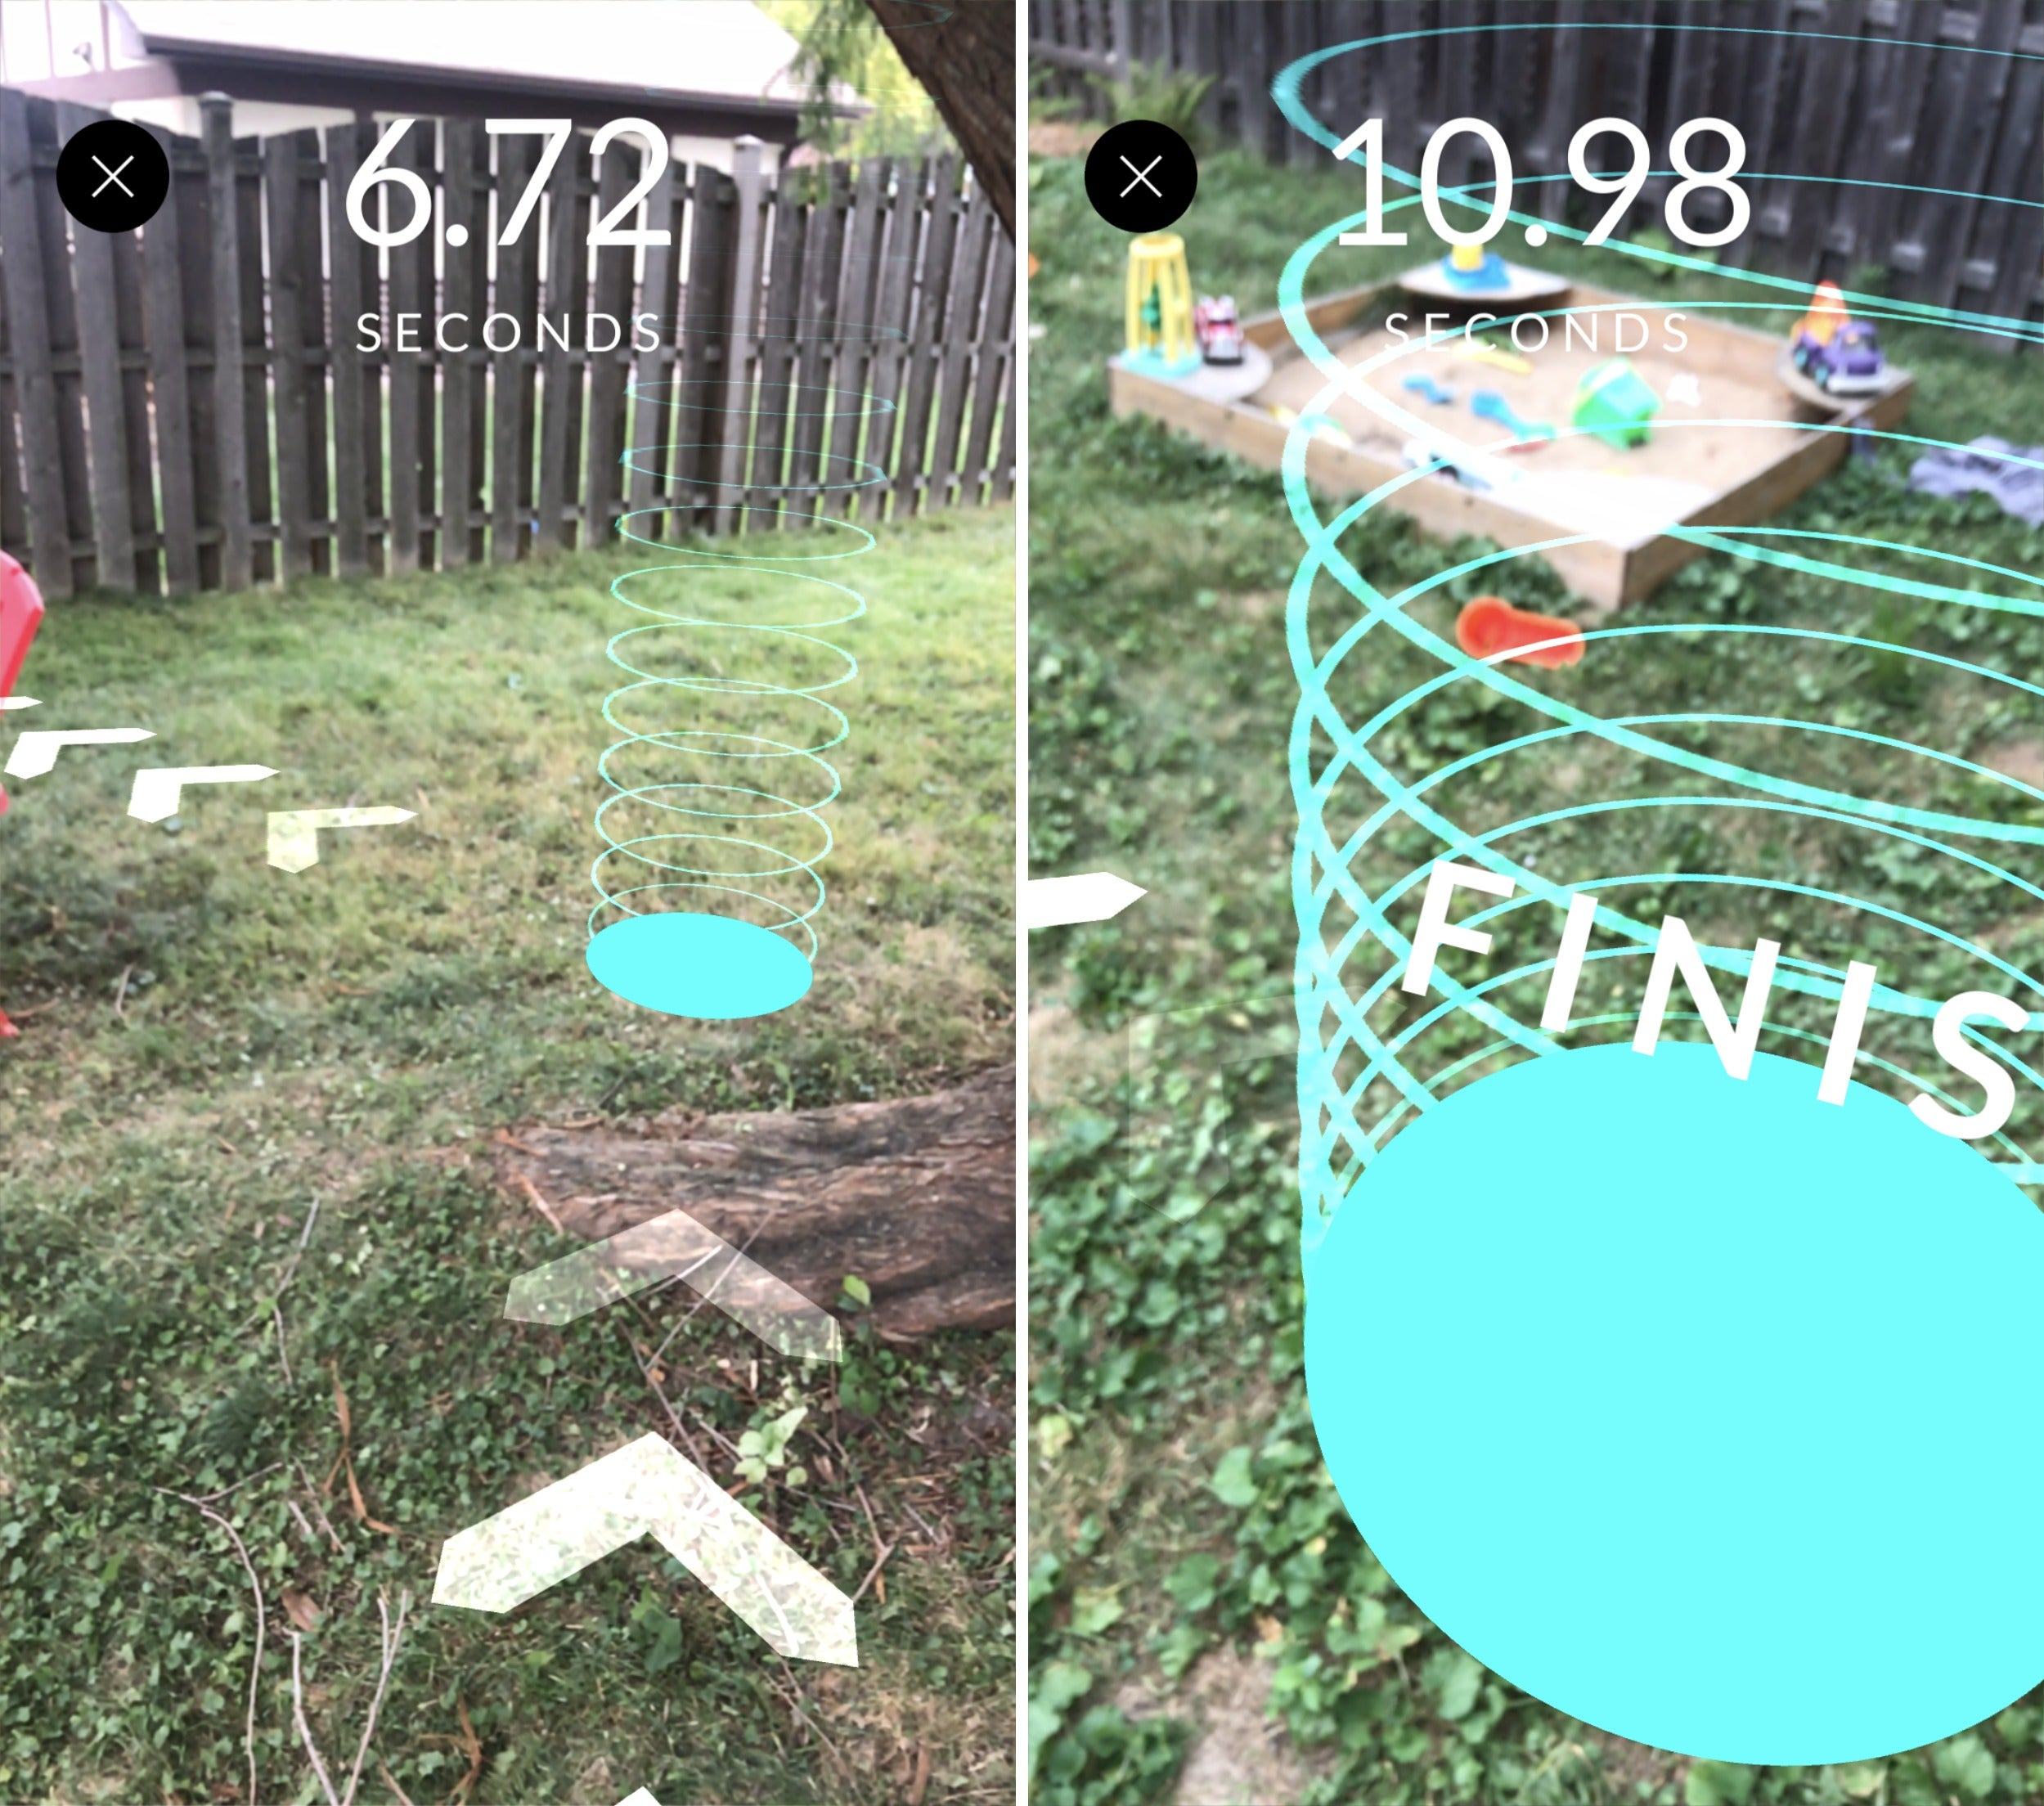 10 of the best arkit apps and games to try for ios 11 macworld